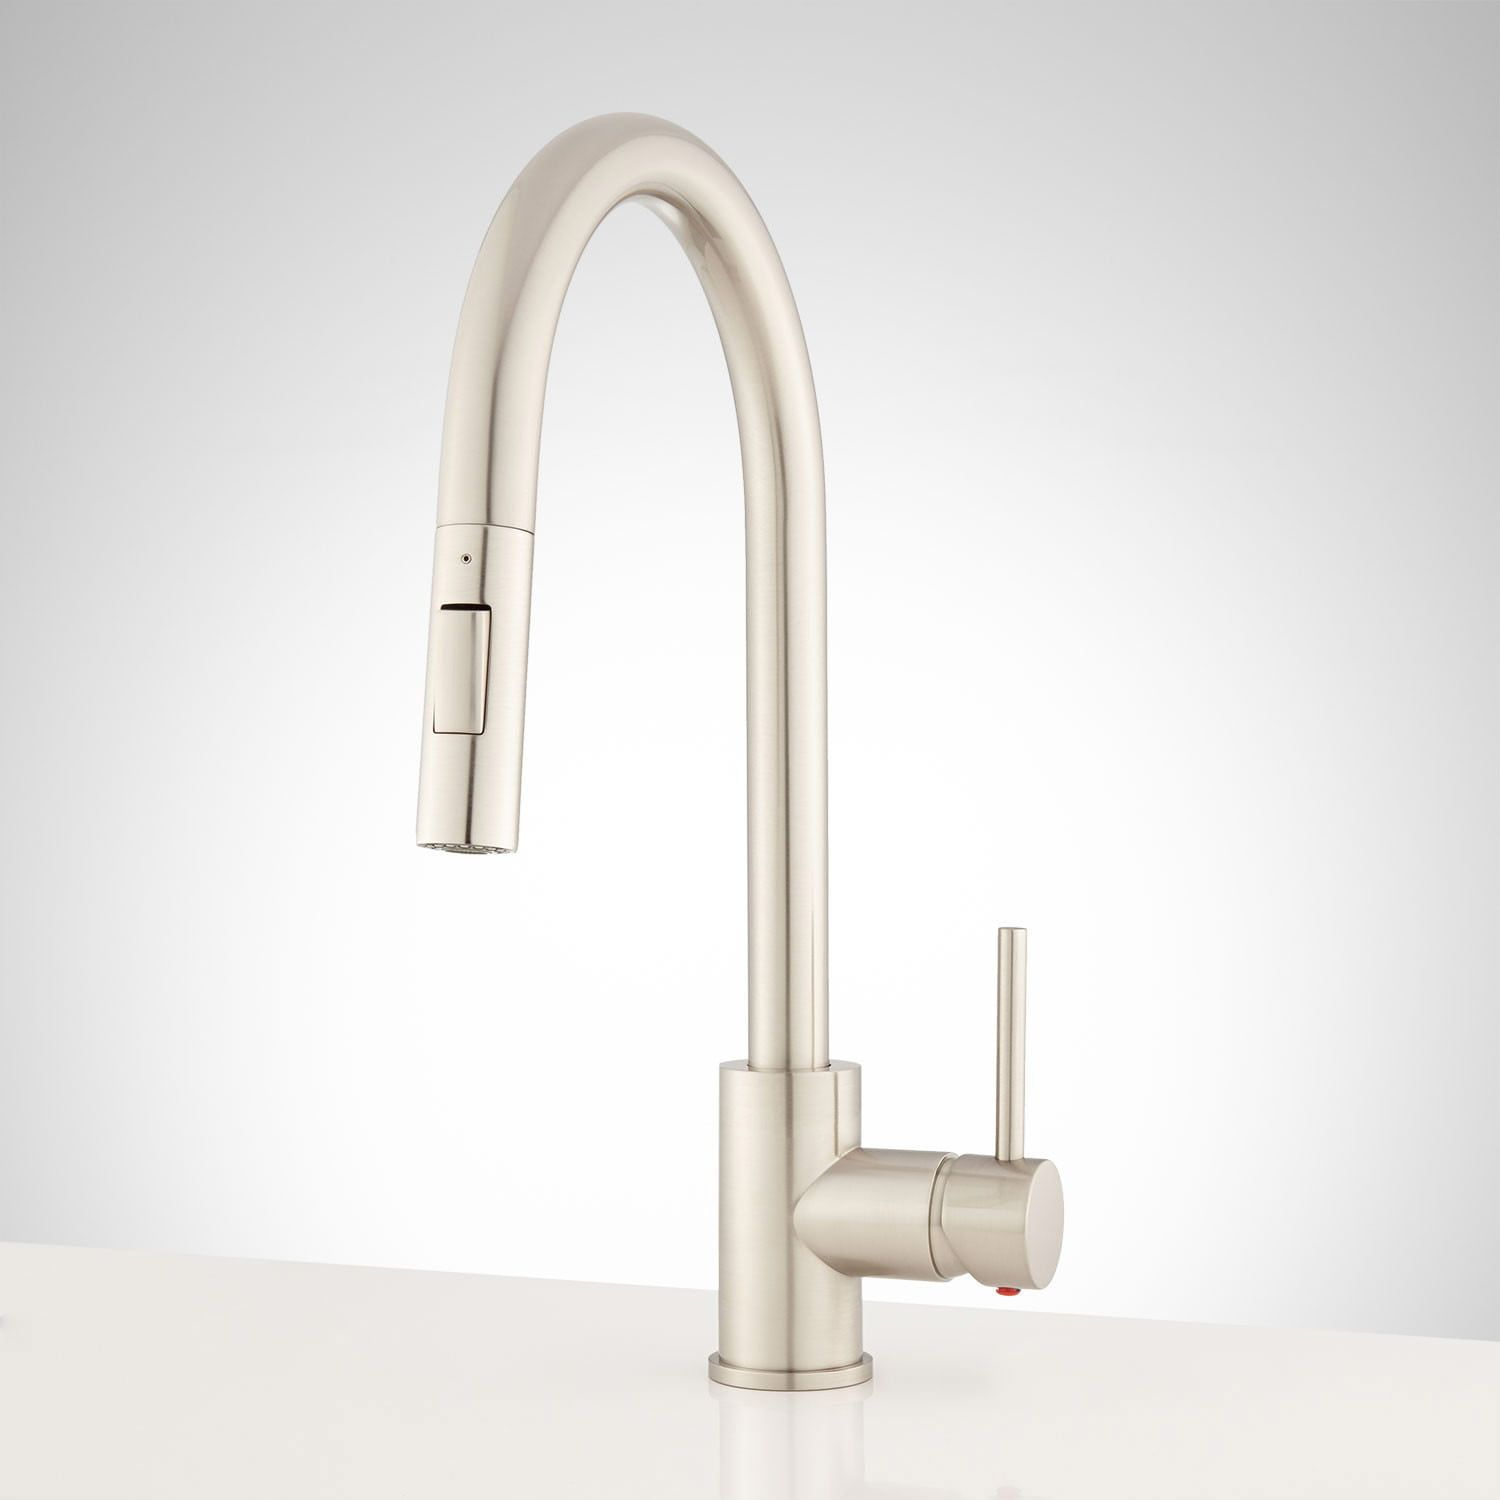 Bocard Single Hole Pull Down Kitchen Faucet Brushed Nickel